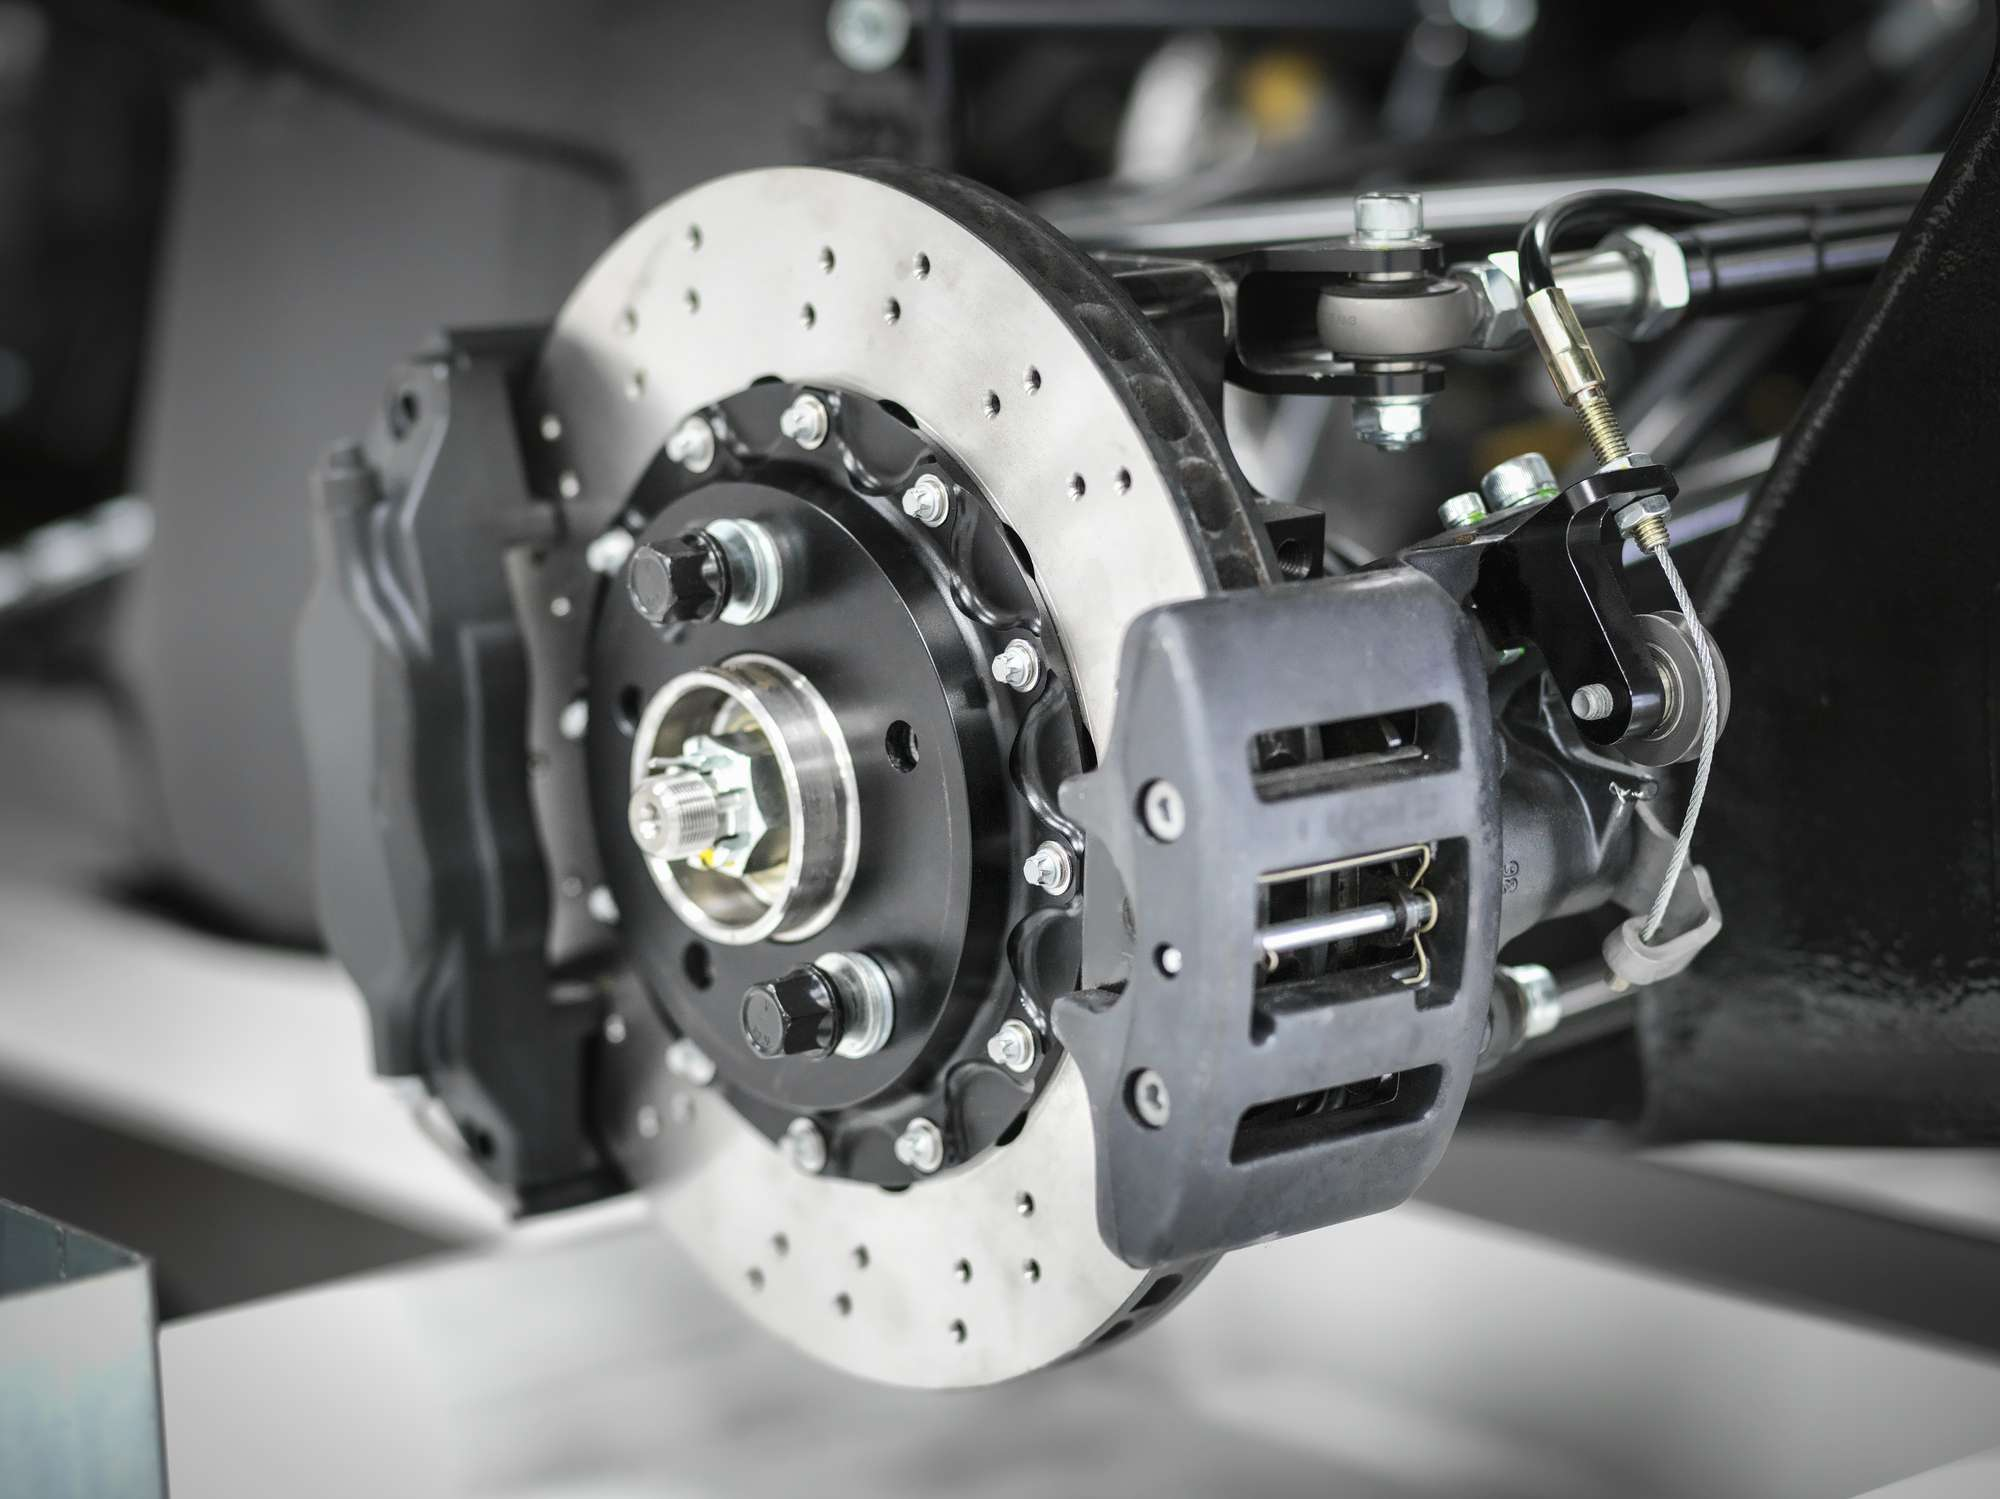 Detailed closeup of a brake rotor, calipers, and other equipment.